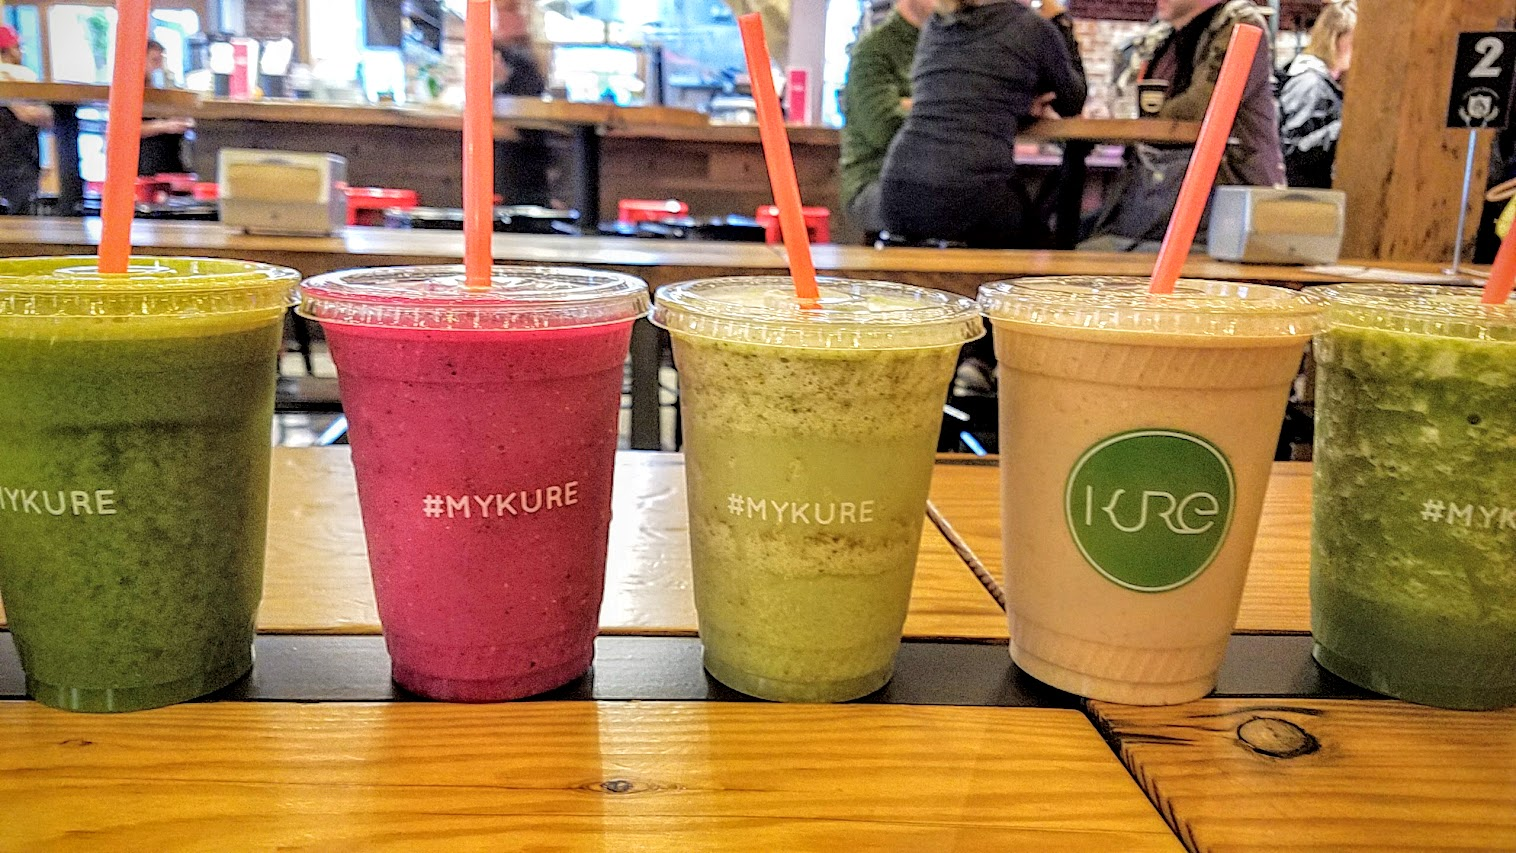 For a healthy option during lunch or brunch at Pine Street Market, Kure Juice Bar offers organic juices, smoothies, tonic shots, hot beverages, oatmeal, and açai bowls